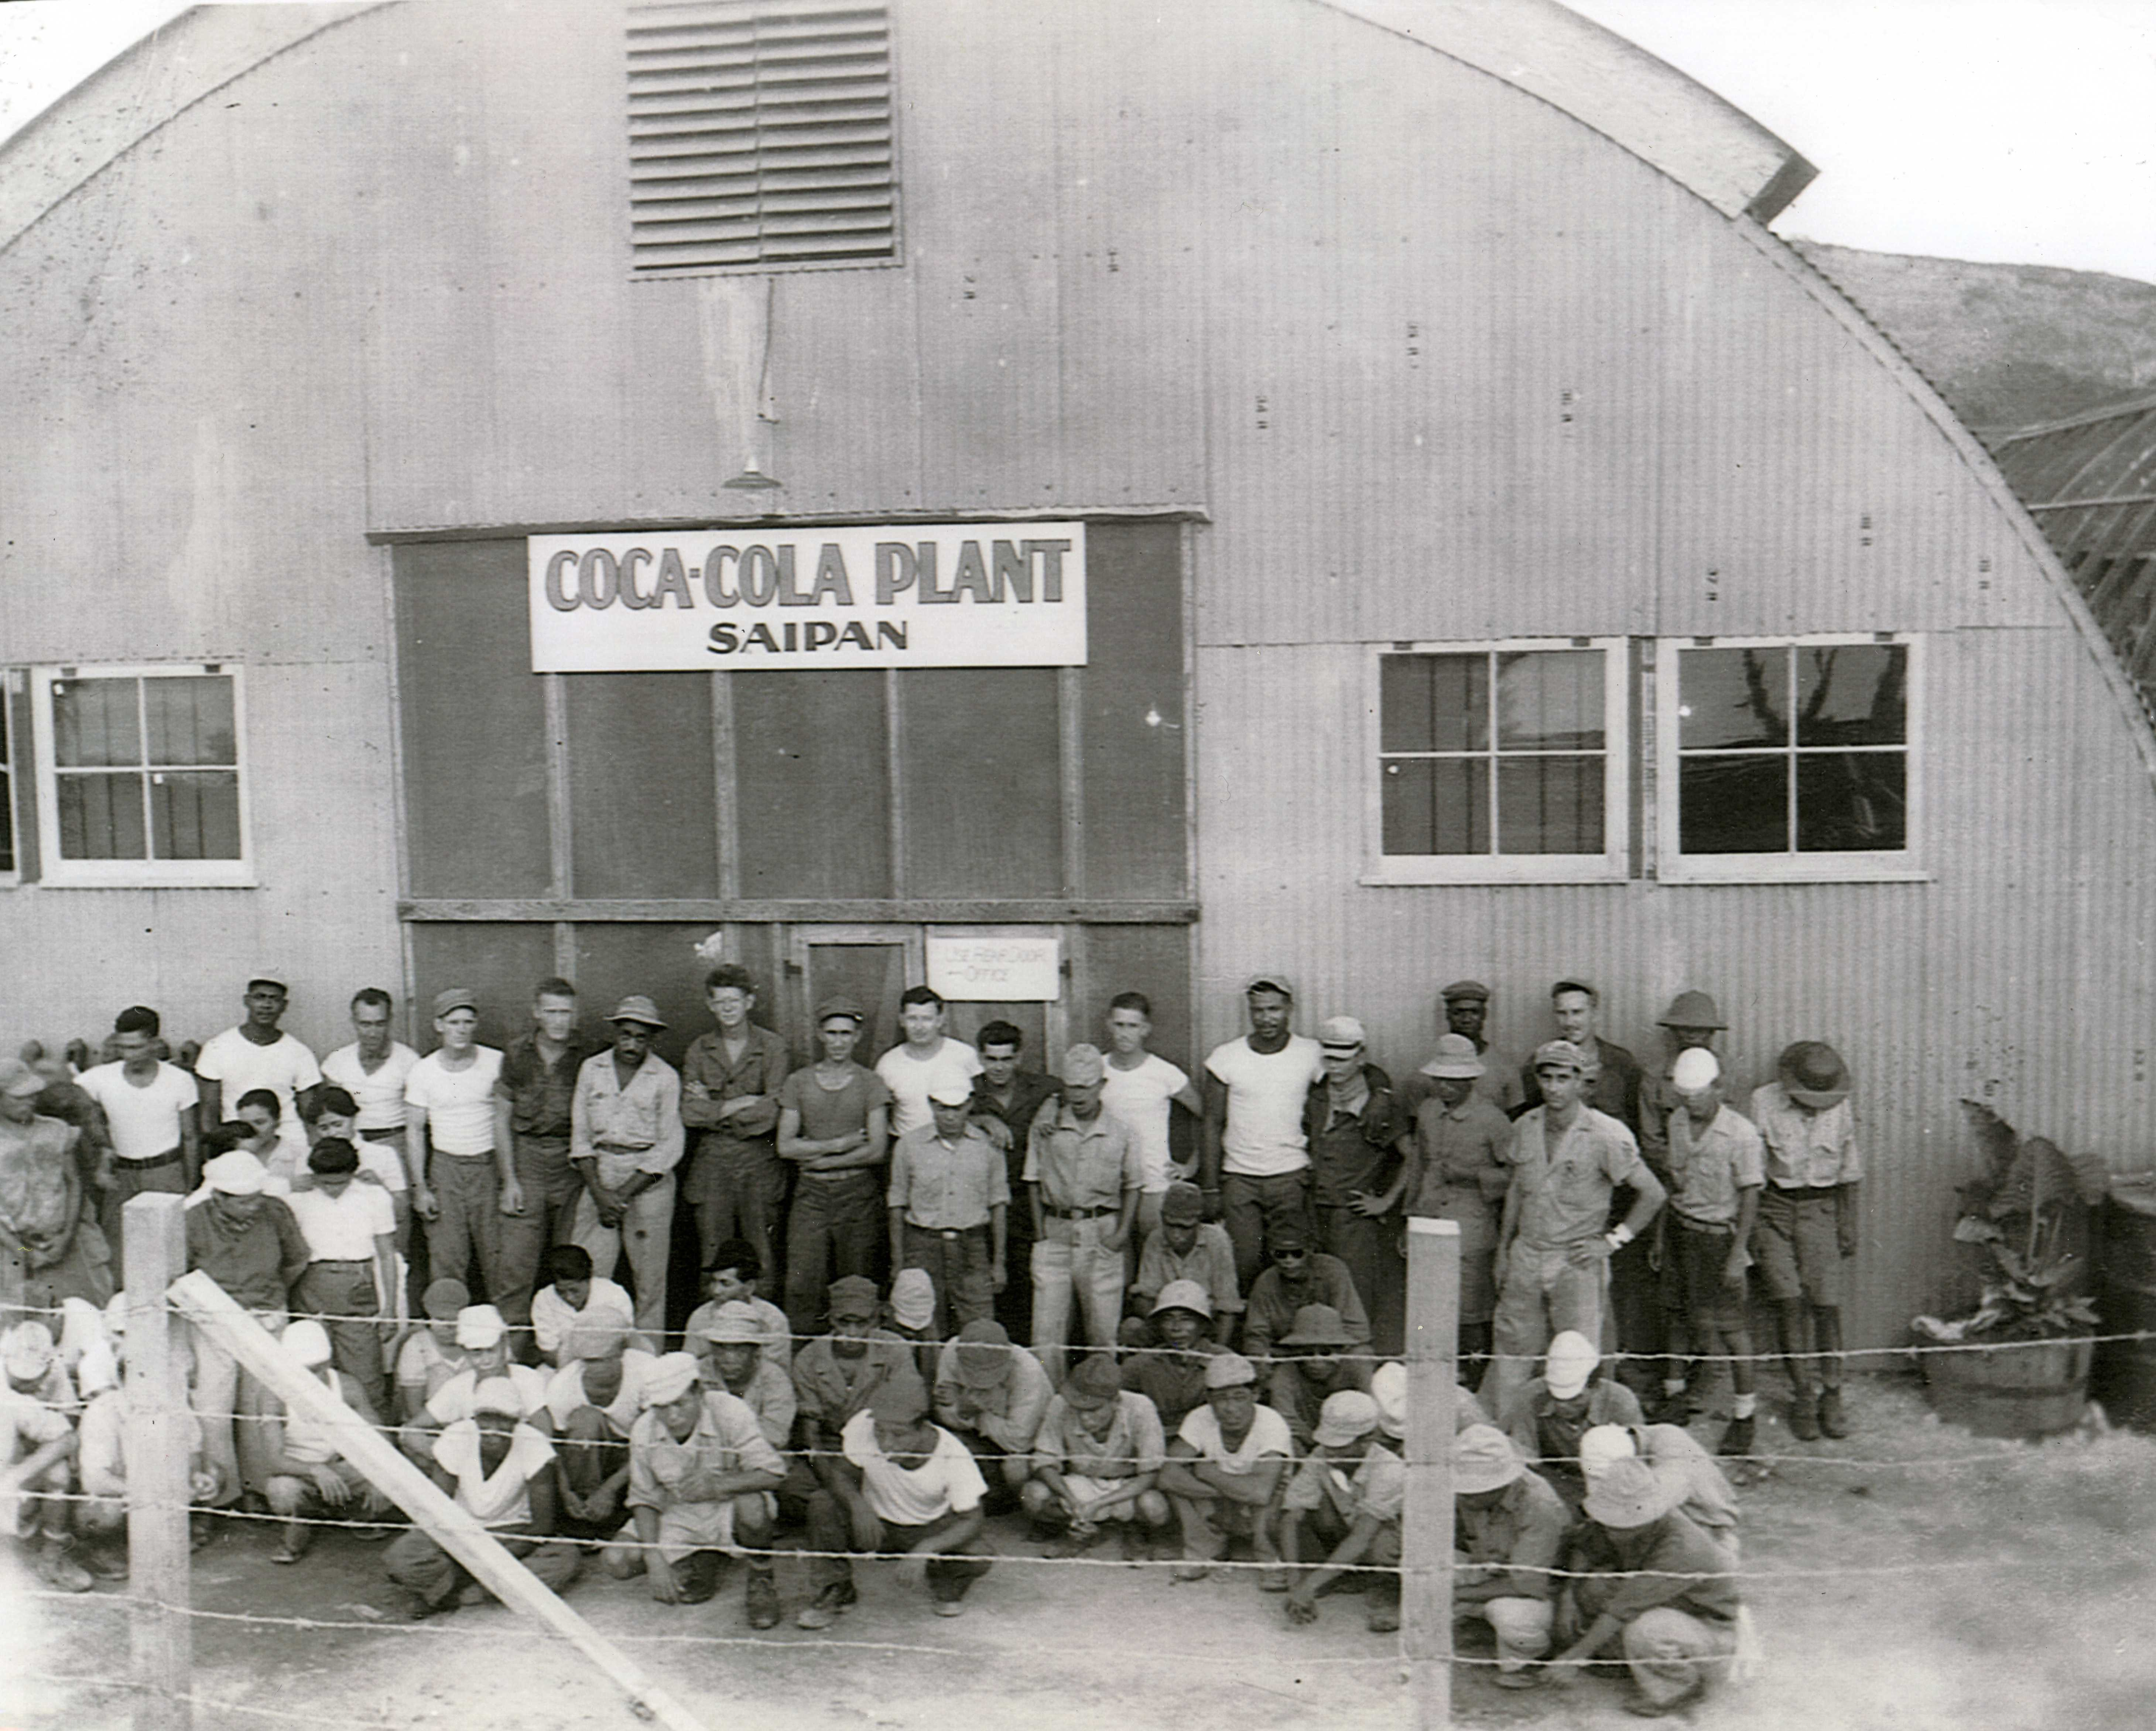 The staff of the Coca-Cola bottling plant established on Saipan. (Photo via The National WWII Museum Inc)